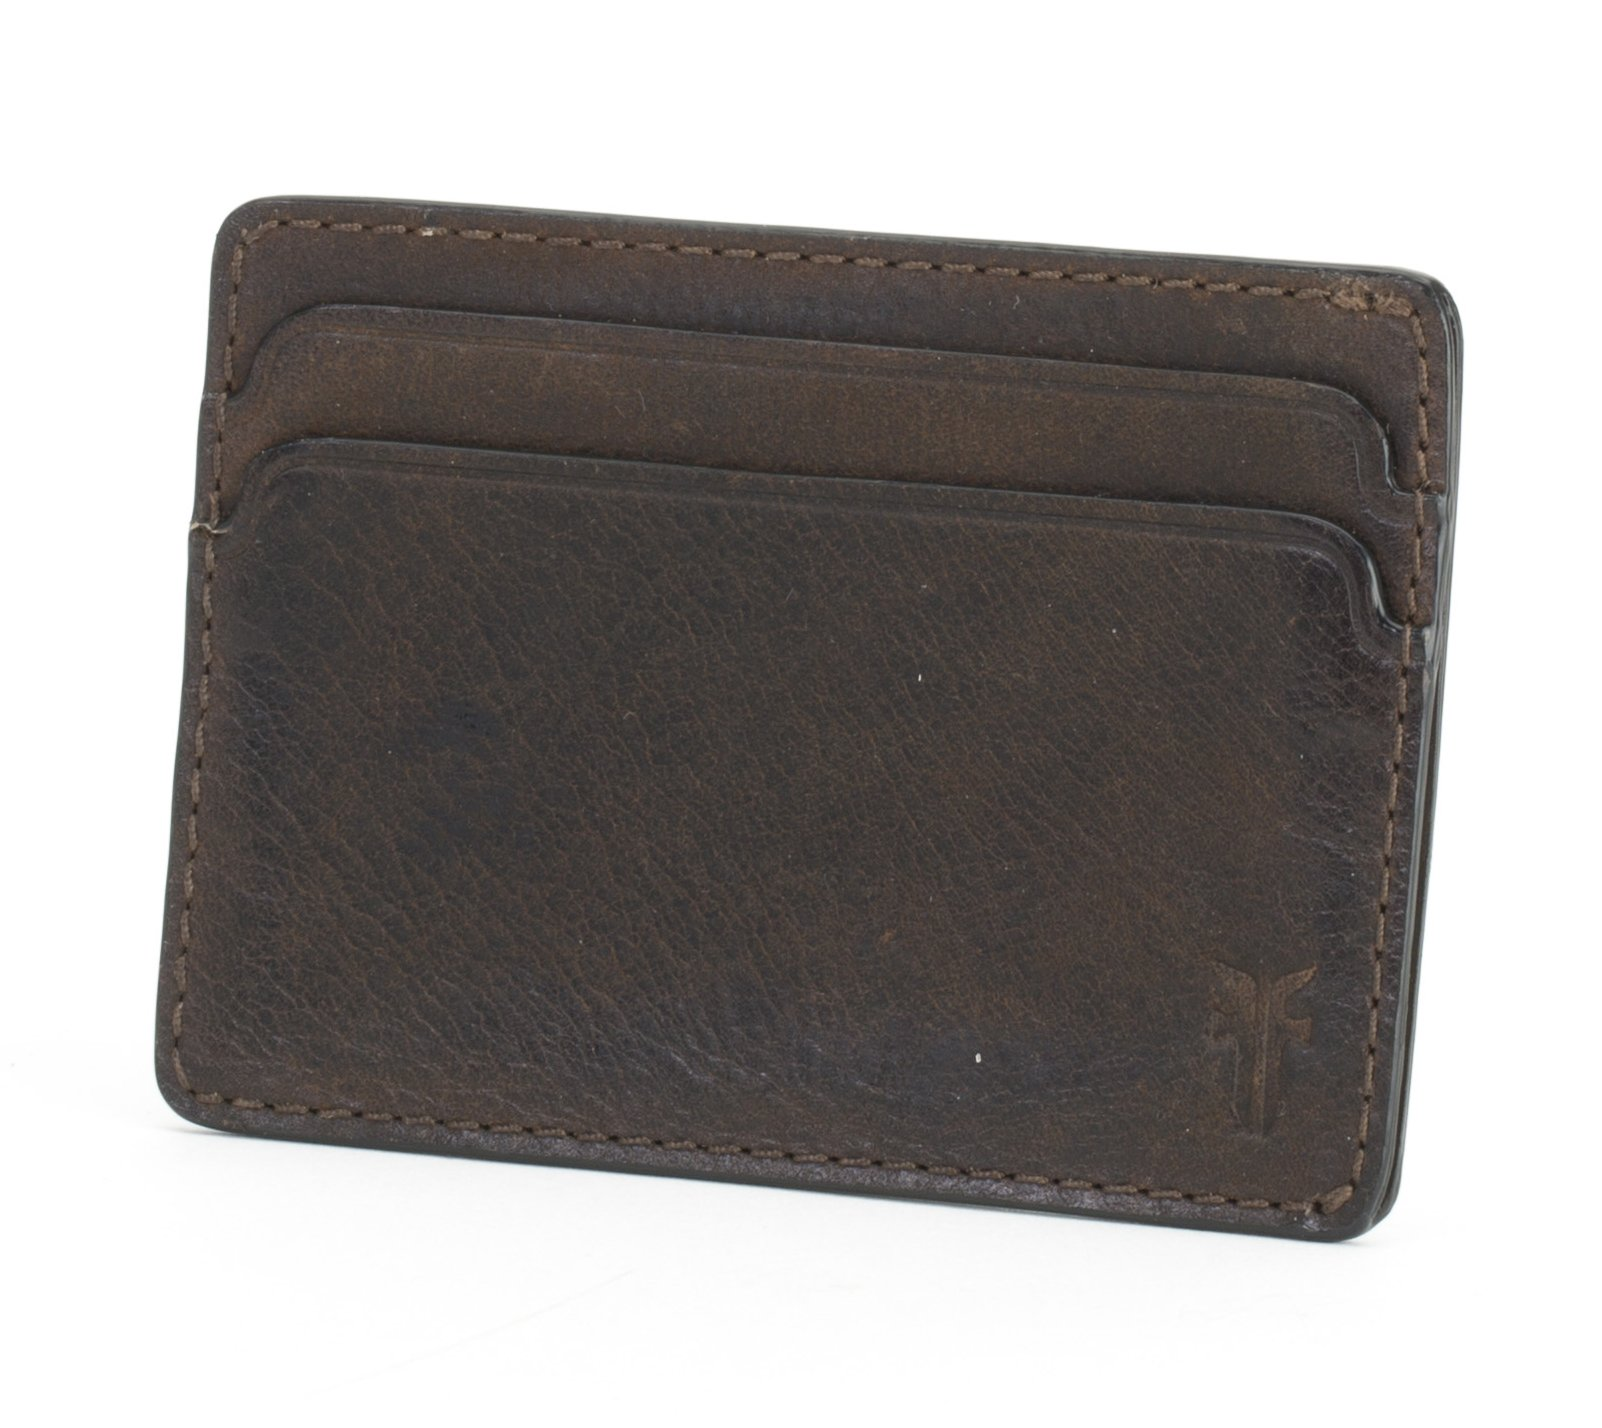 FRYE Men's Oliver Id Card Case, Dark Brown, One Size by FRYE